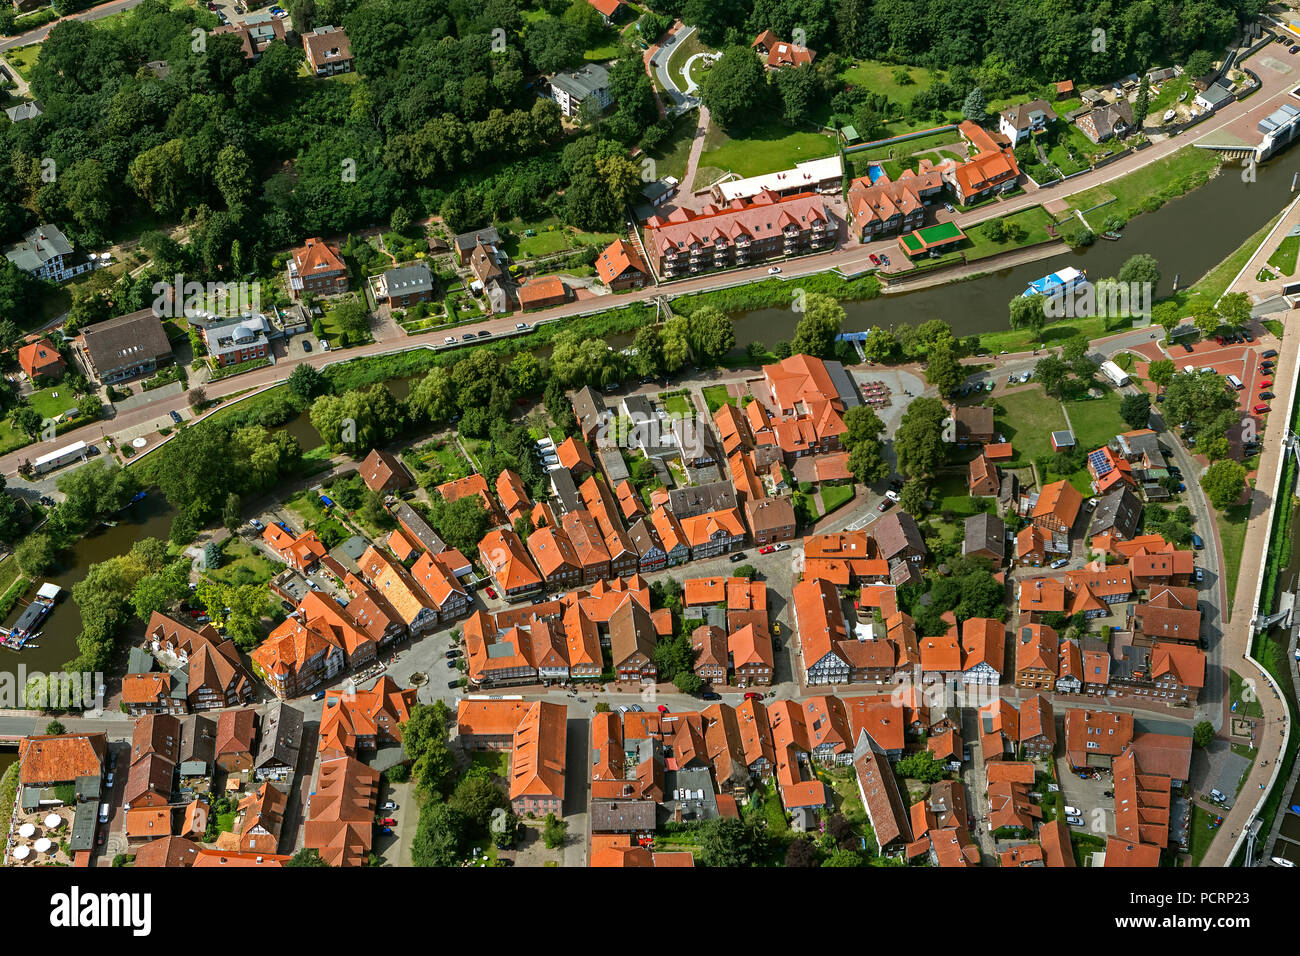 Aerial view, old town of Hitzacker with the Jeetzel and Altjeetzel, Elbe, Elbe shore, flood protection works, sluice, Hitzacker (Elbe), district Lüchow-Dannenberg, Elbe Valley, Lower Saxony, Germany, Europe Stock Photo